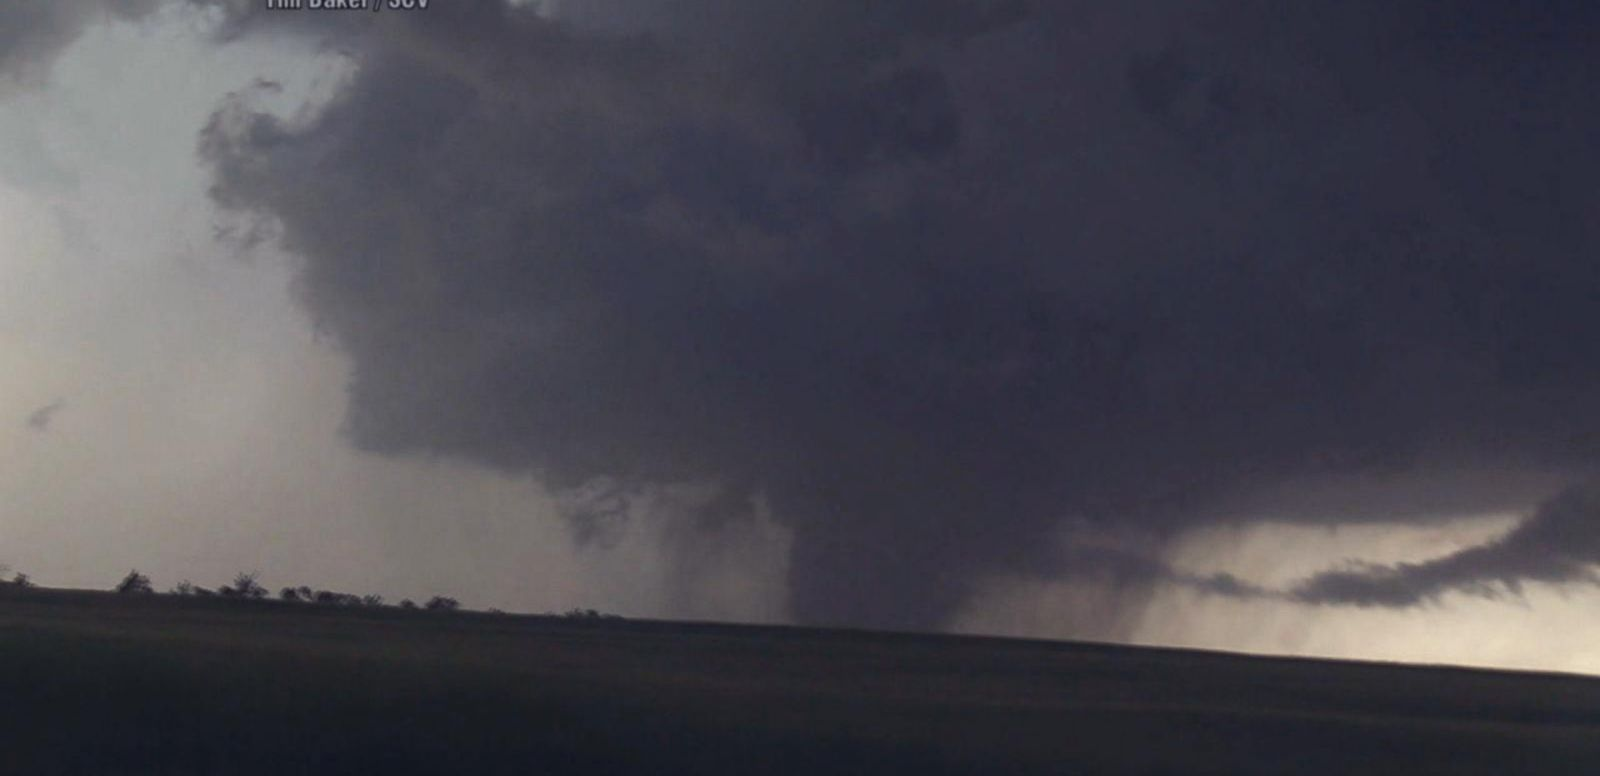 VIDEO: Severe Storms and Tornadoes Hit the Midwest